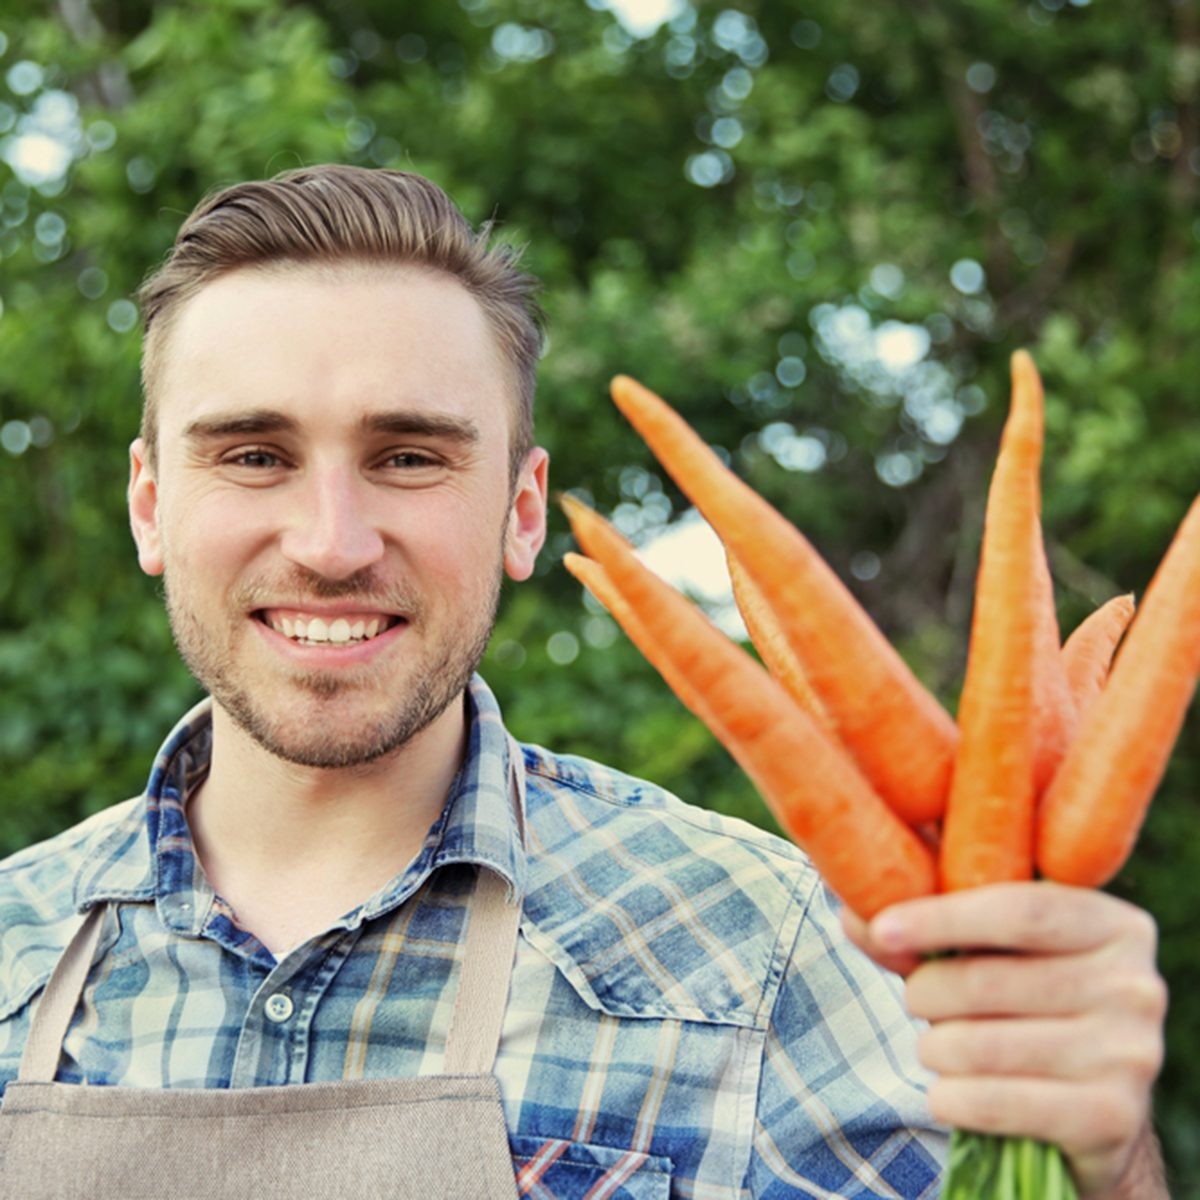 Handsome man with carrots in green garden